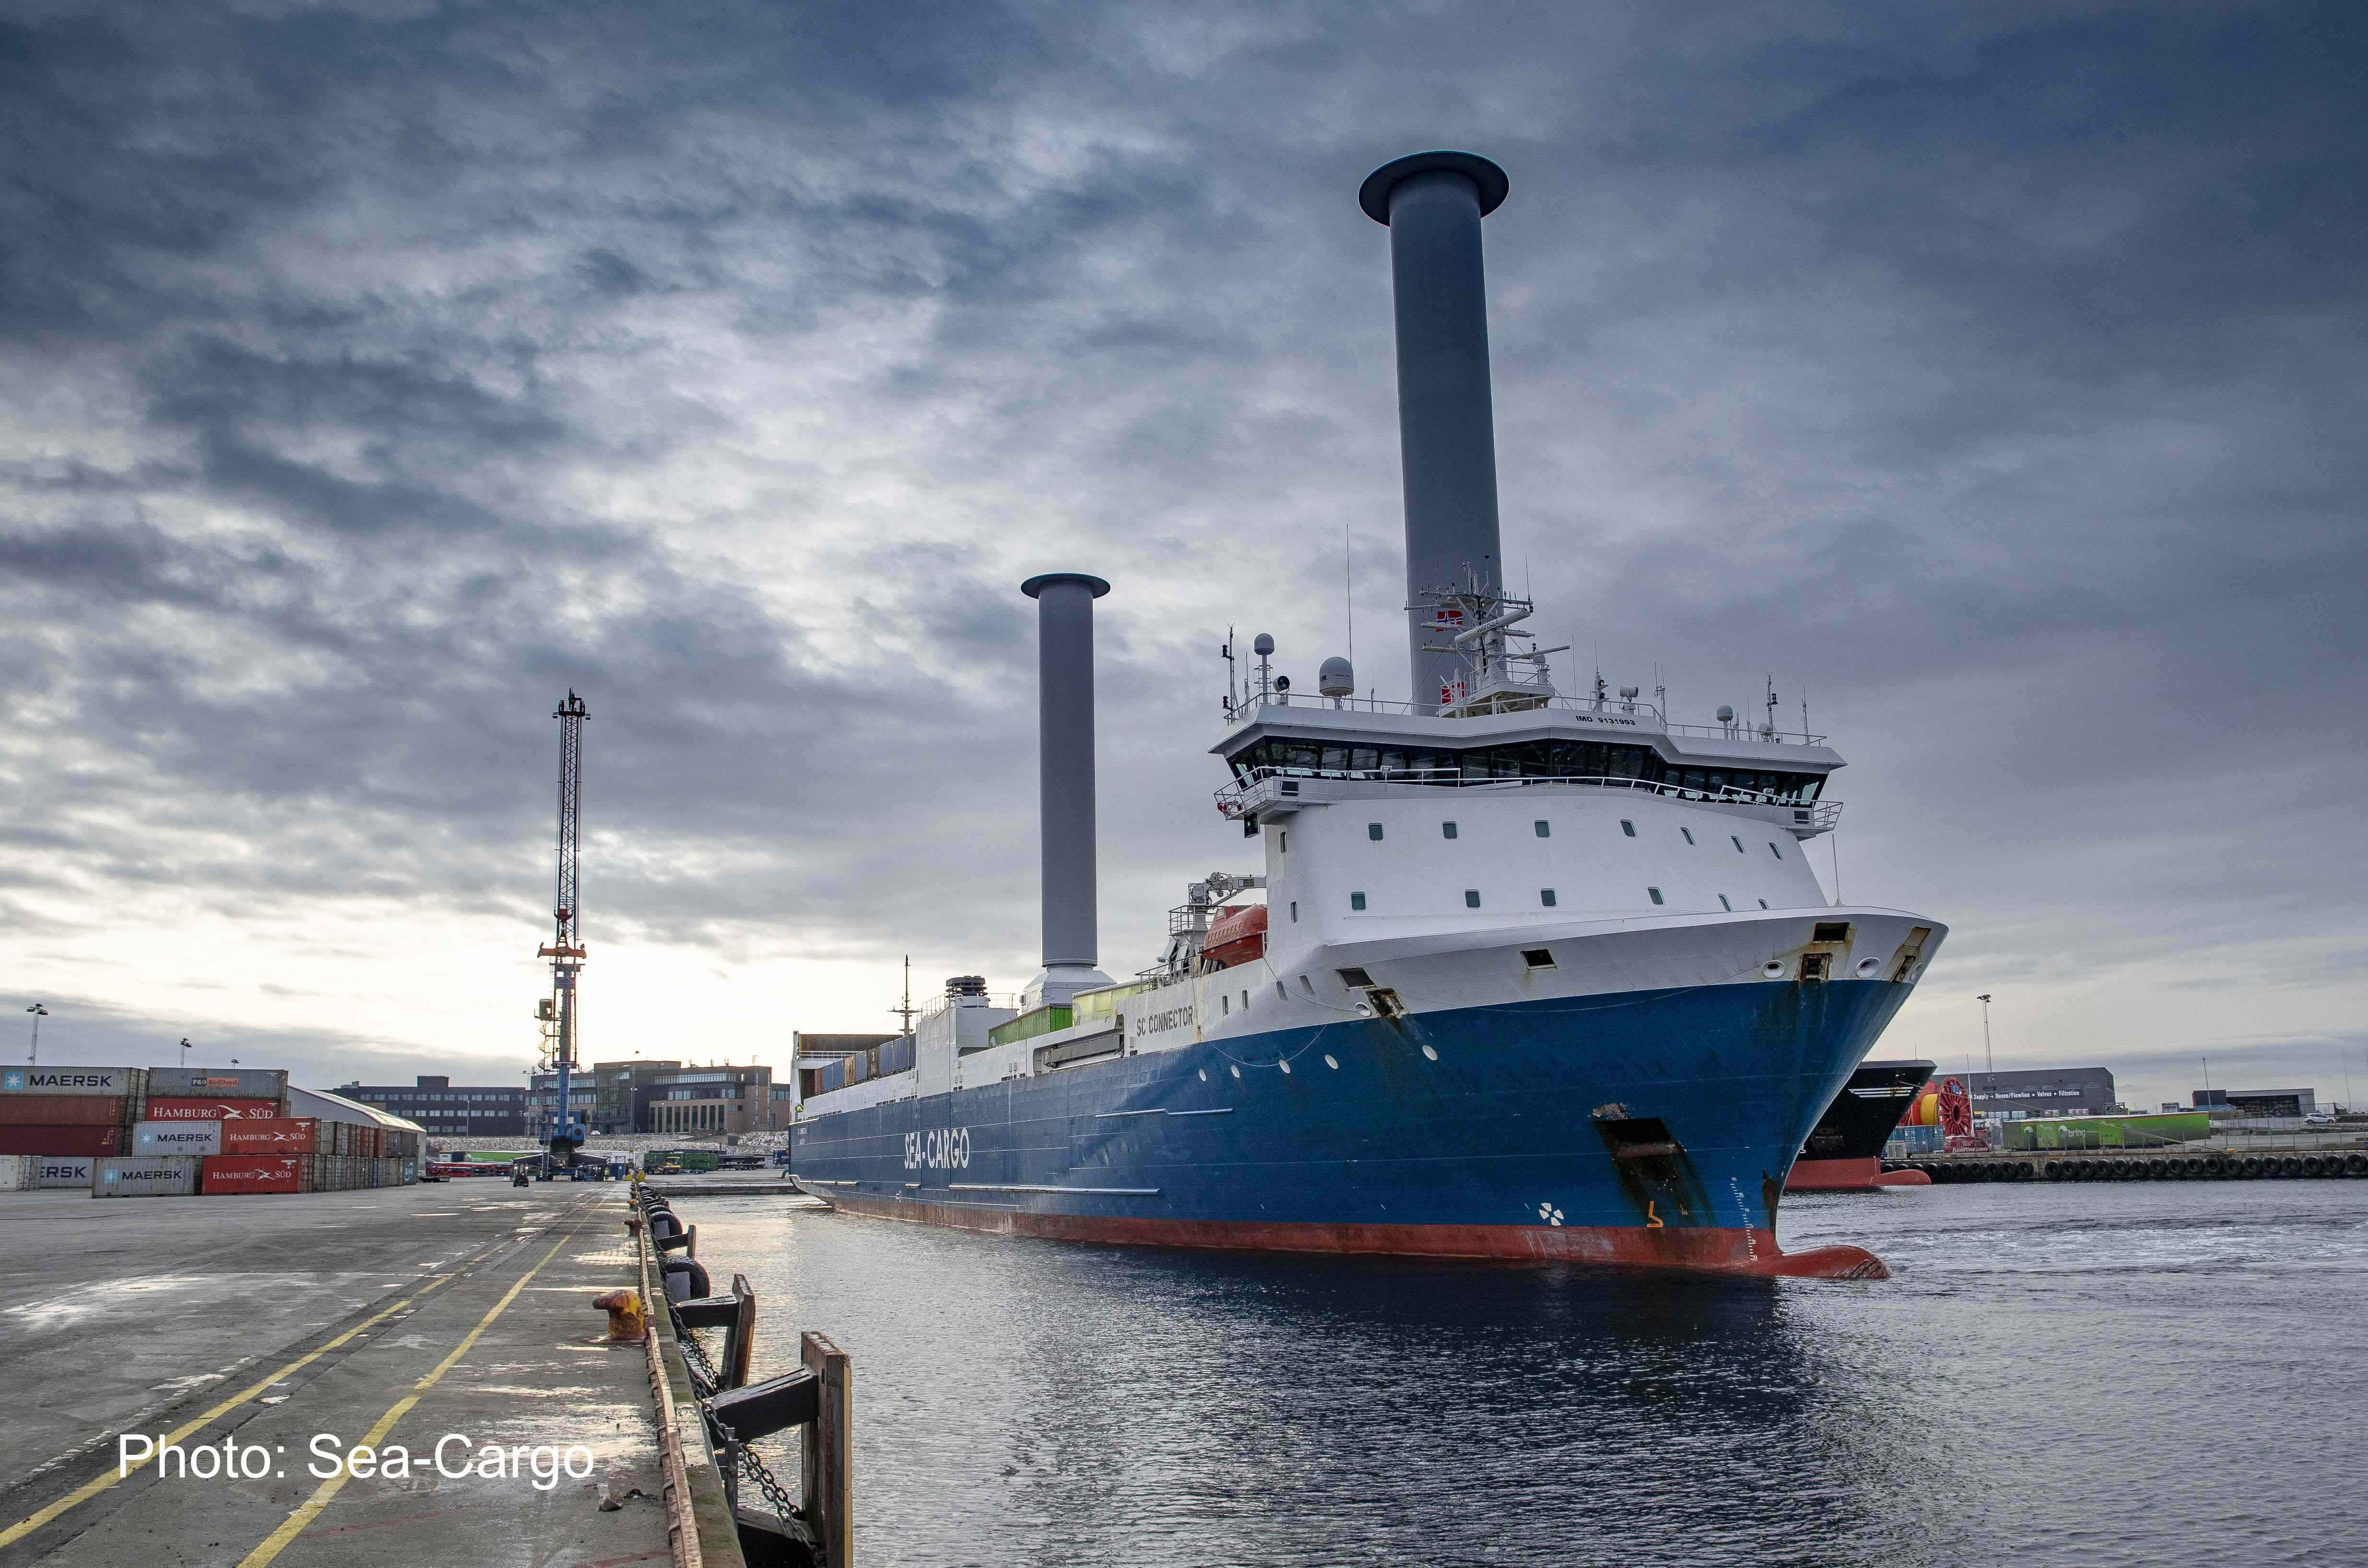 SC Connector RoRo with world's largest Rotor Sails